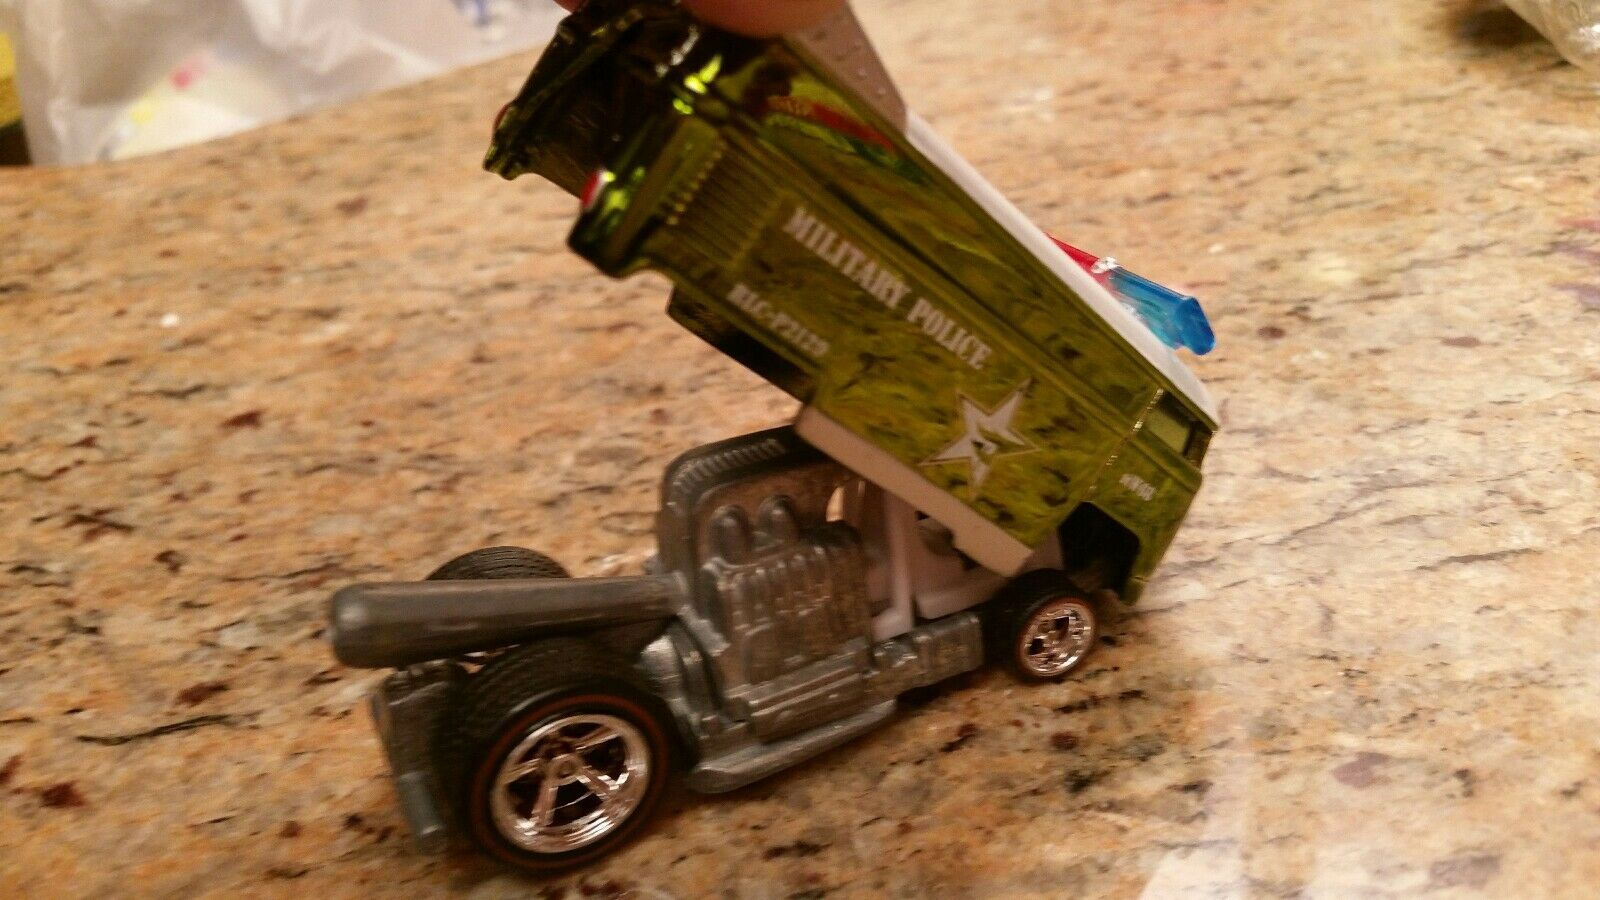 Error de variaciones militar Hot Wheels duro encontrar RLC Vw Drag Bus antes de RLC 1